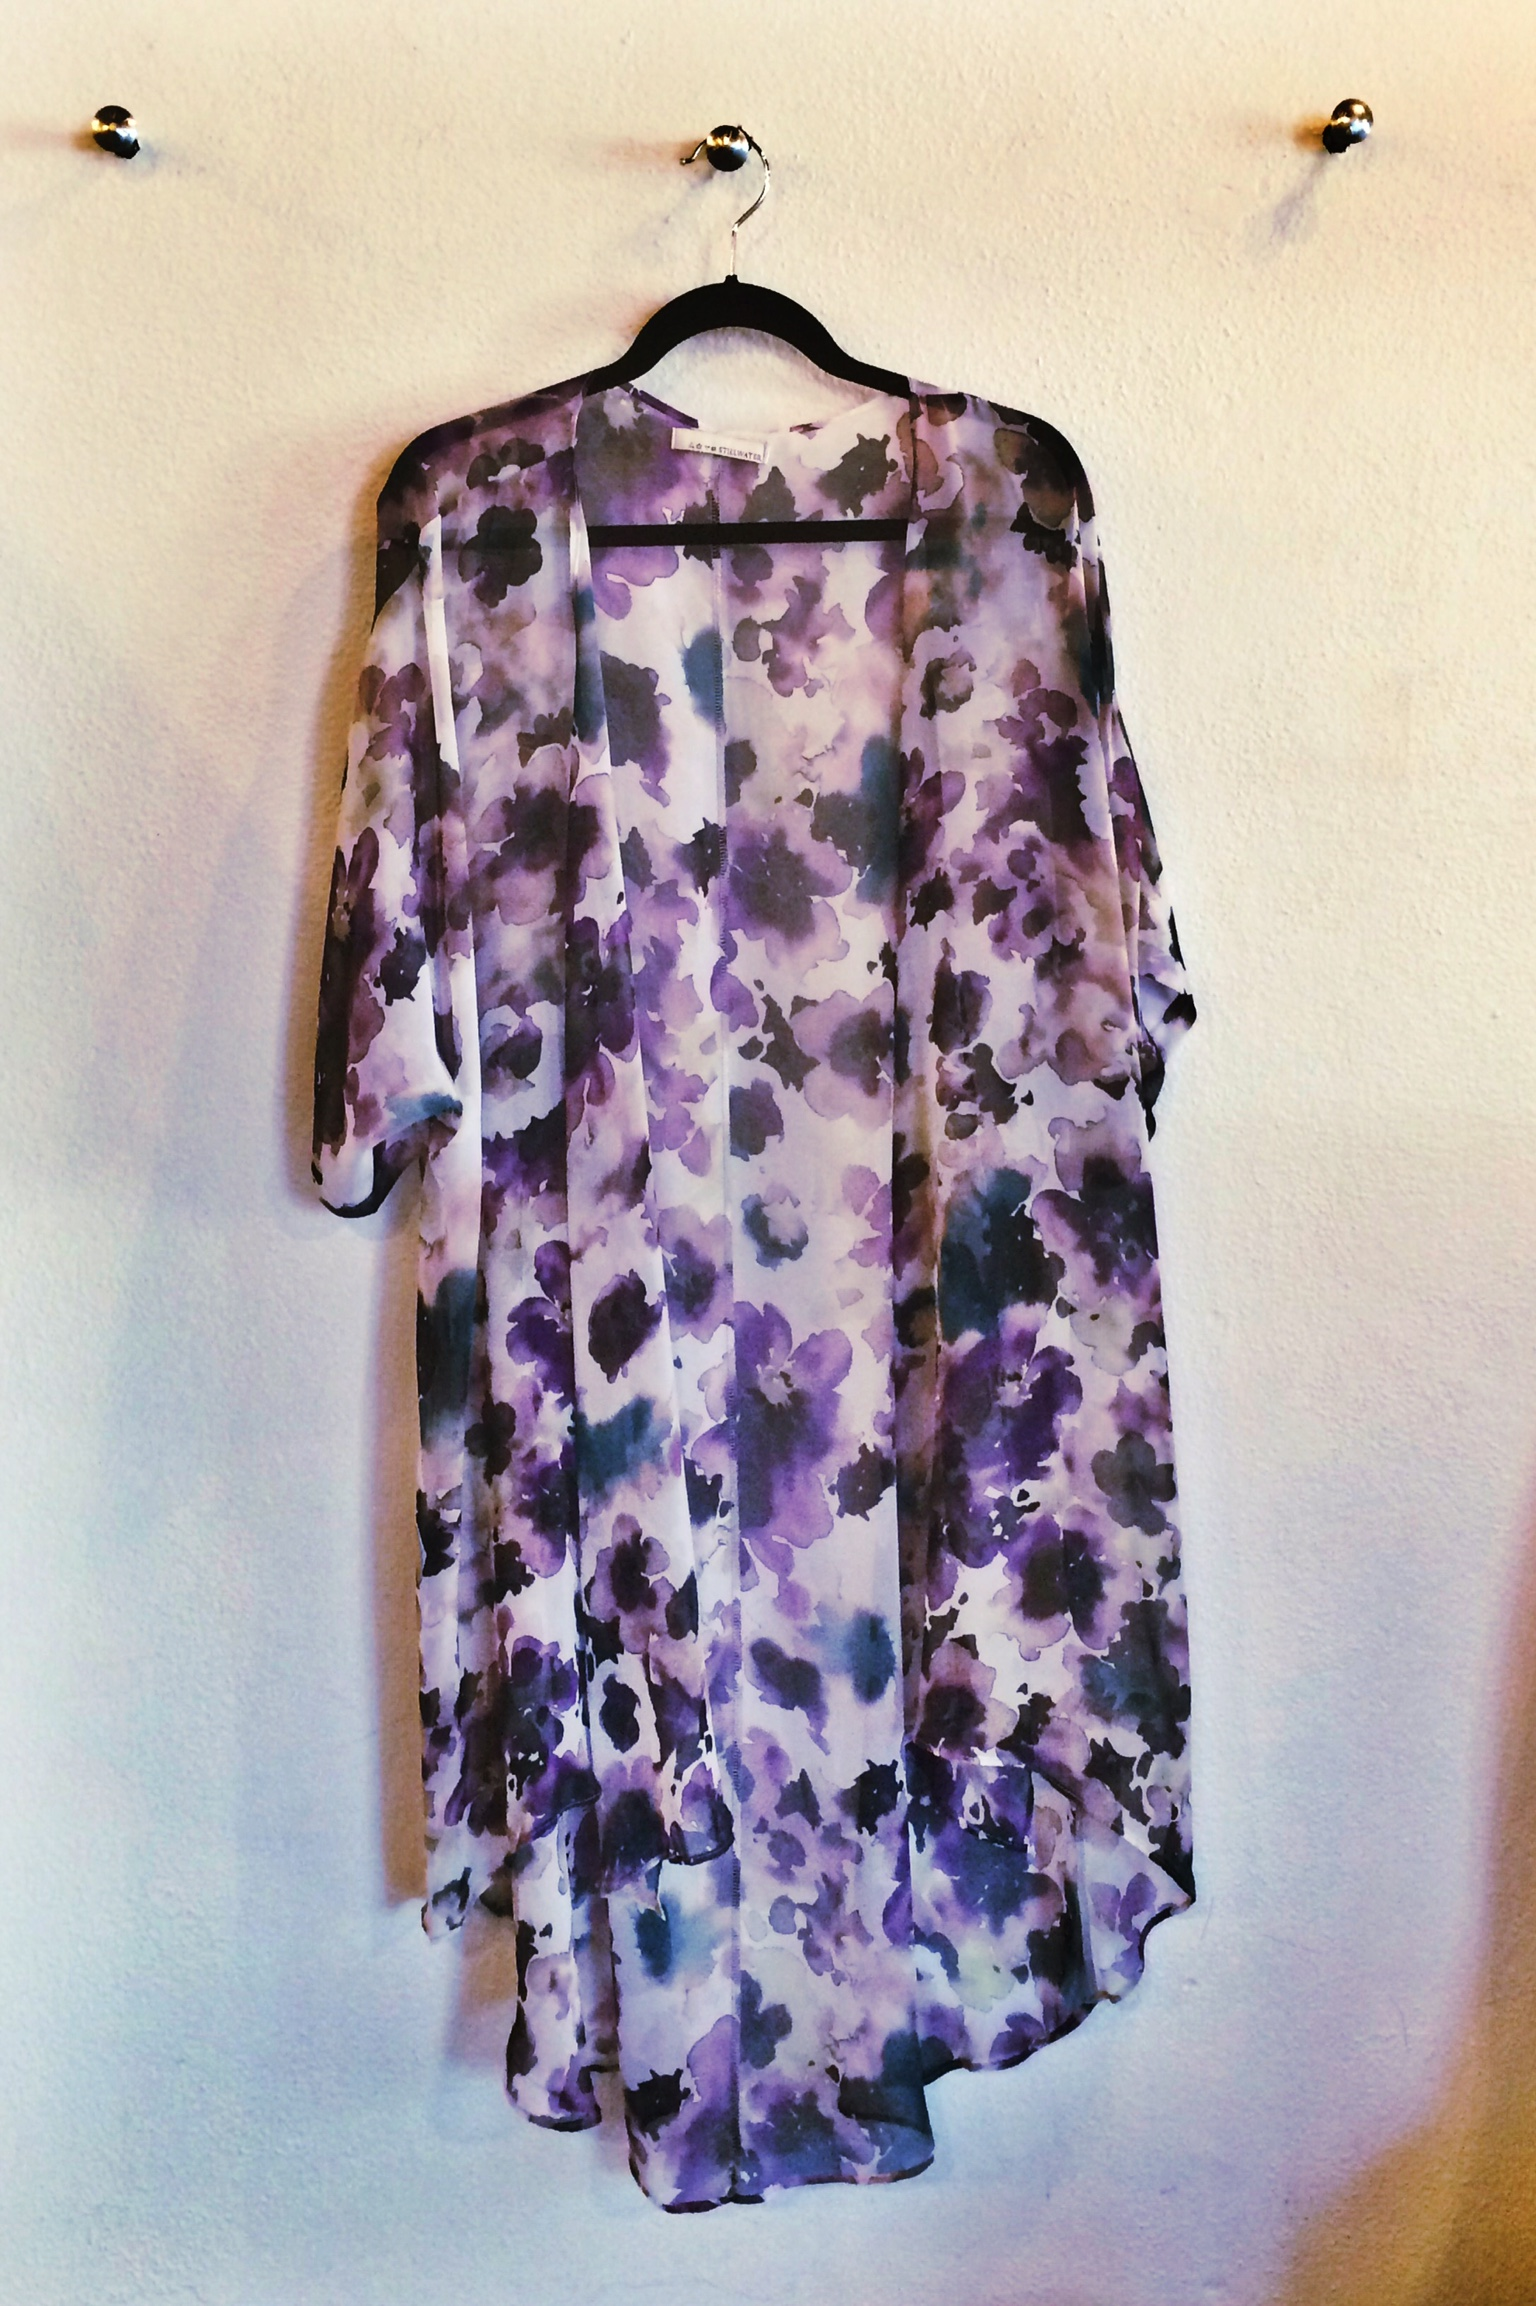 Raquel Greer Gordian exhibits a floral kimono perfect for spring.